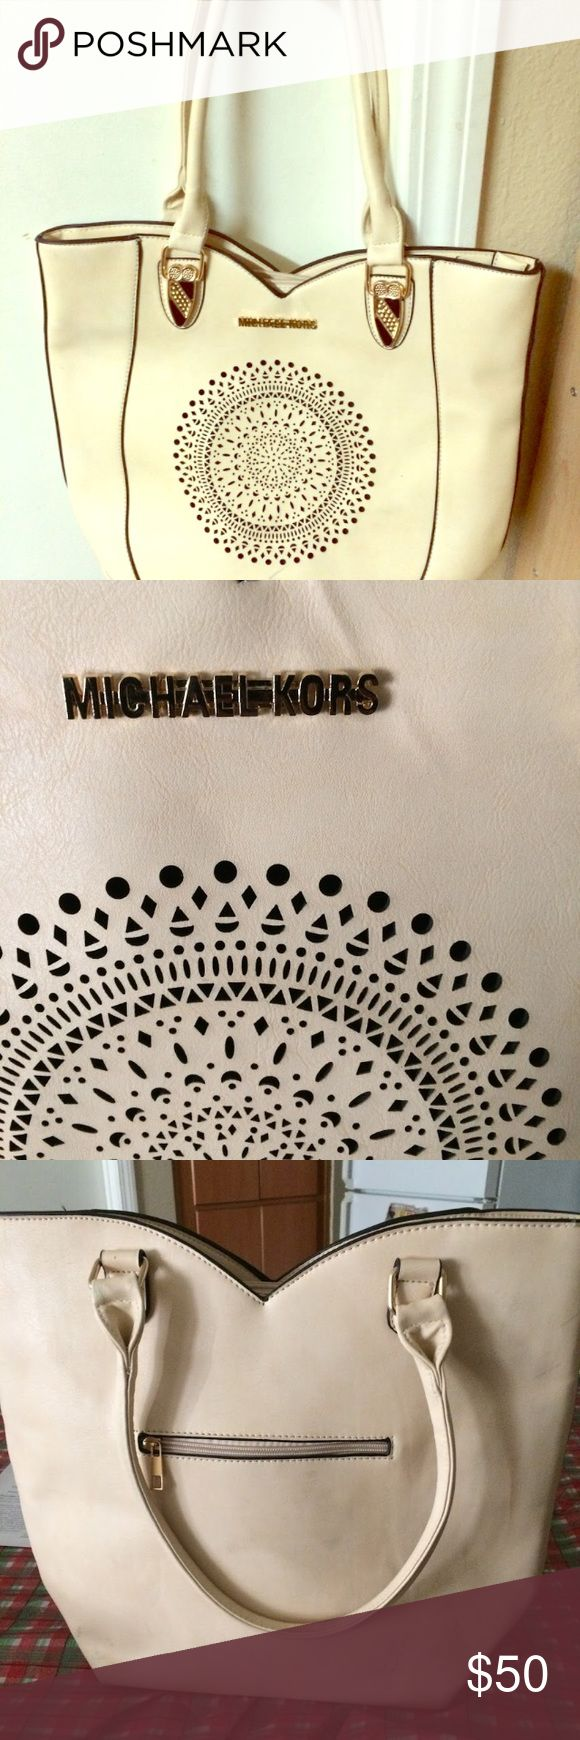 MK Bag Bone color MK bag has a few marks can be cleaned. Big and roomy. Not Genuine MK bag nice look a like. MICHAEL Michael Kors Bags Shoulder Bags